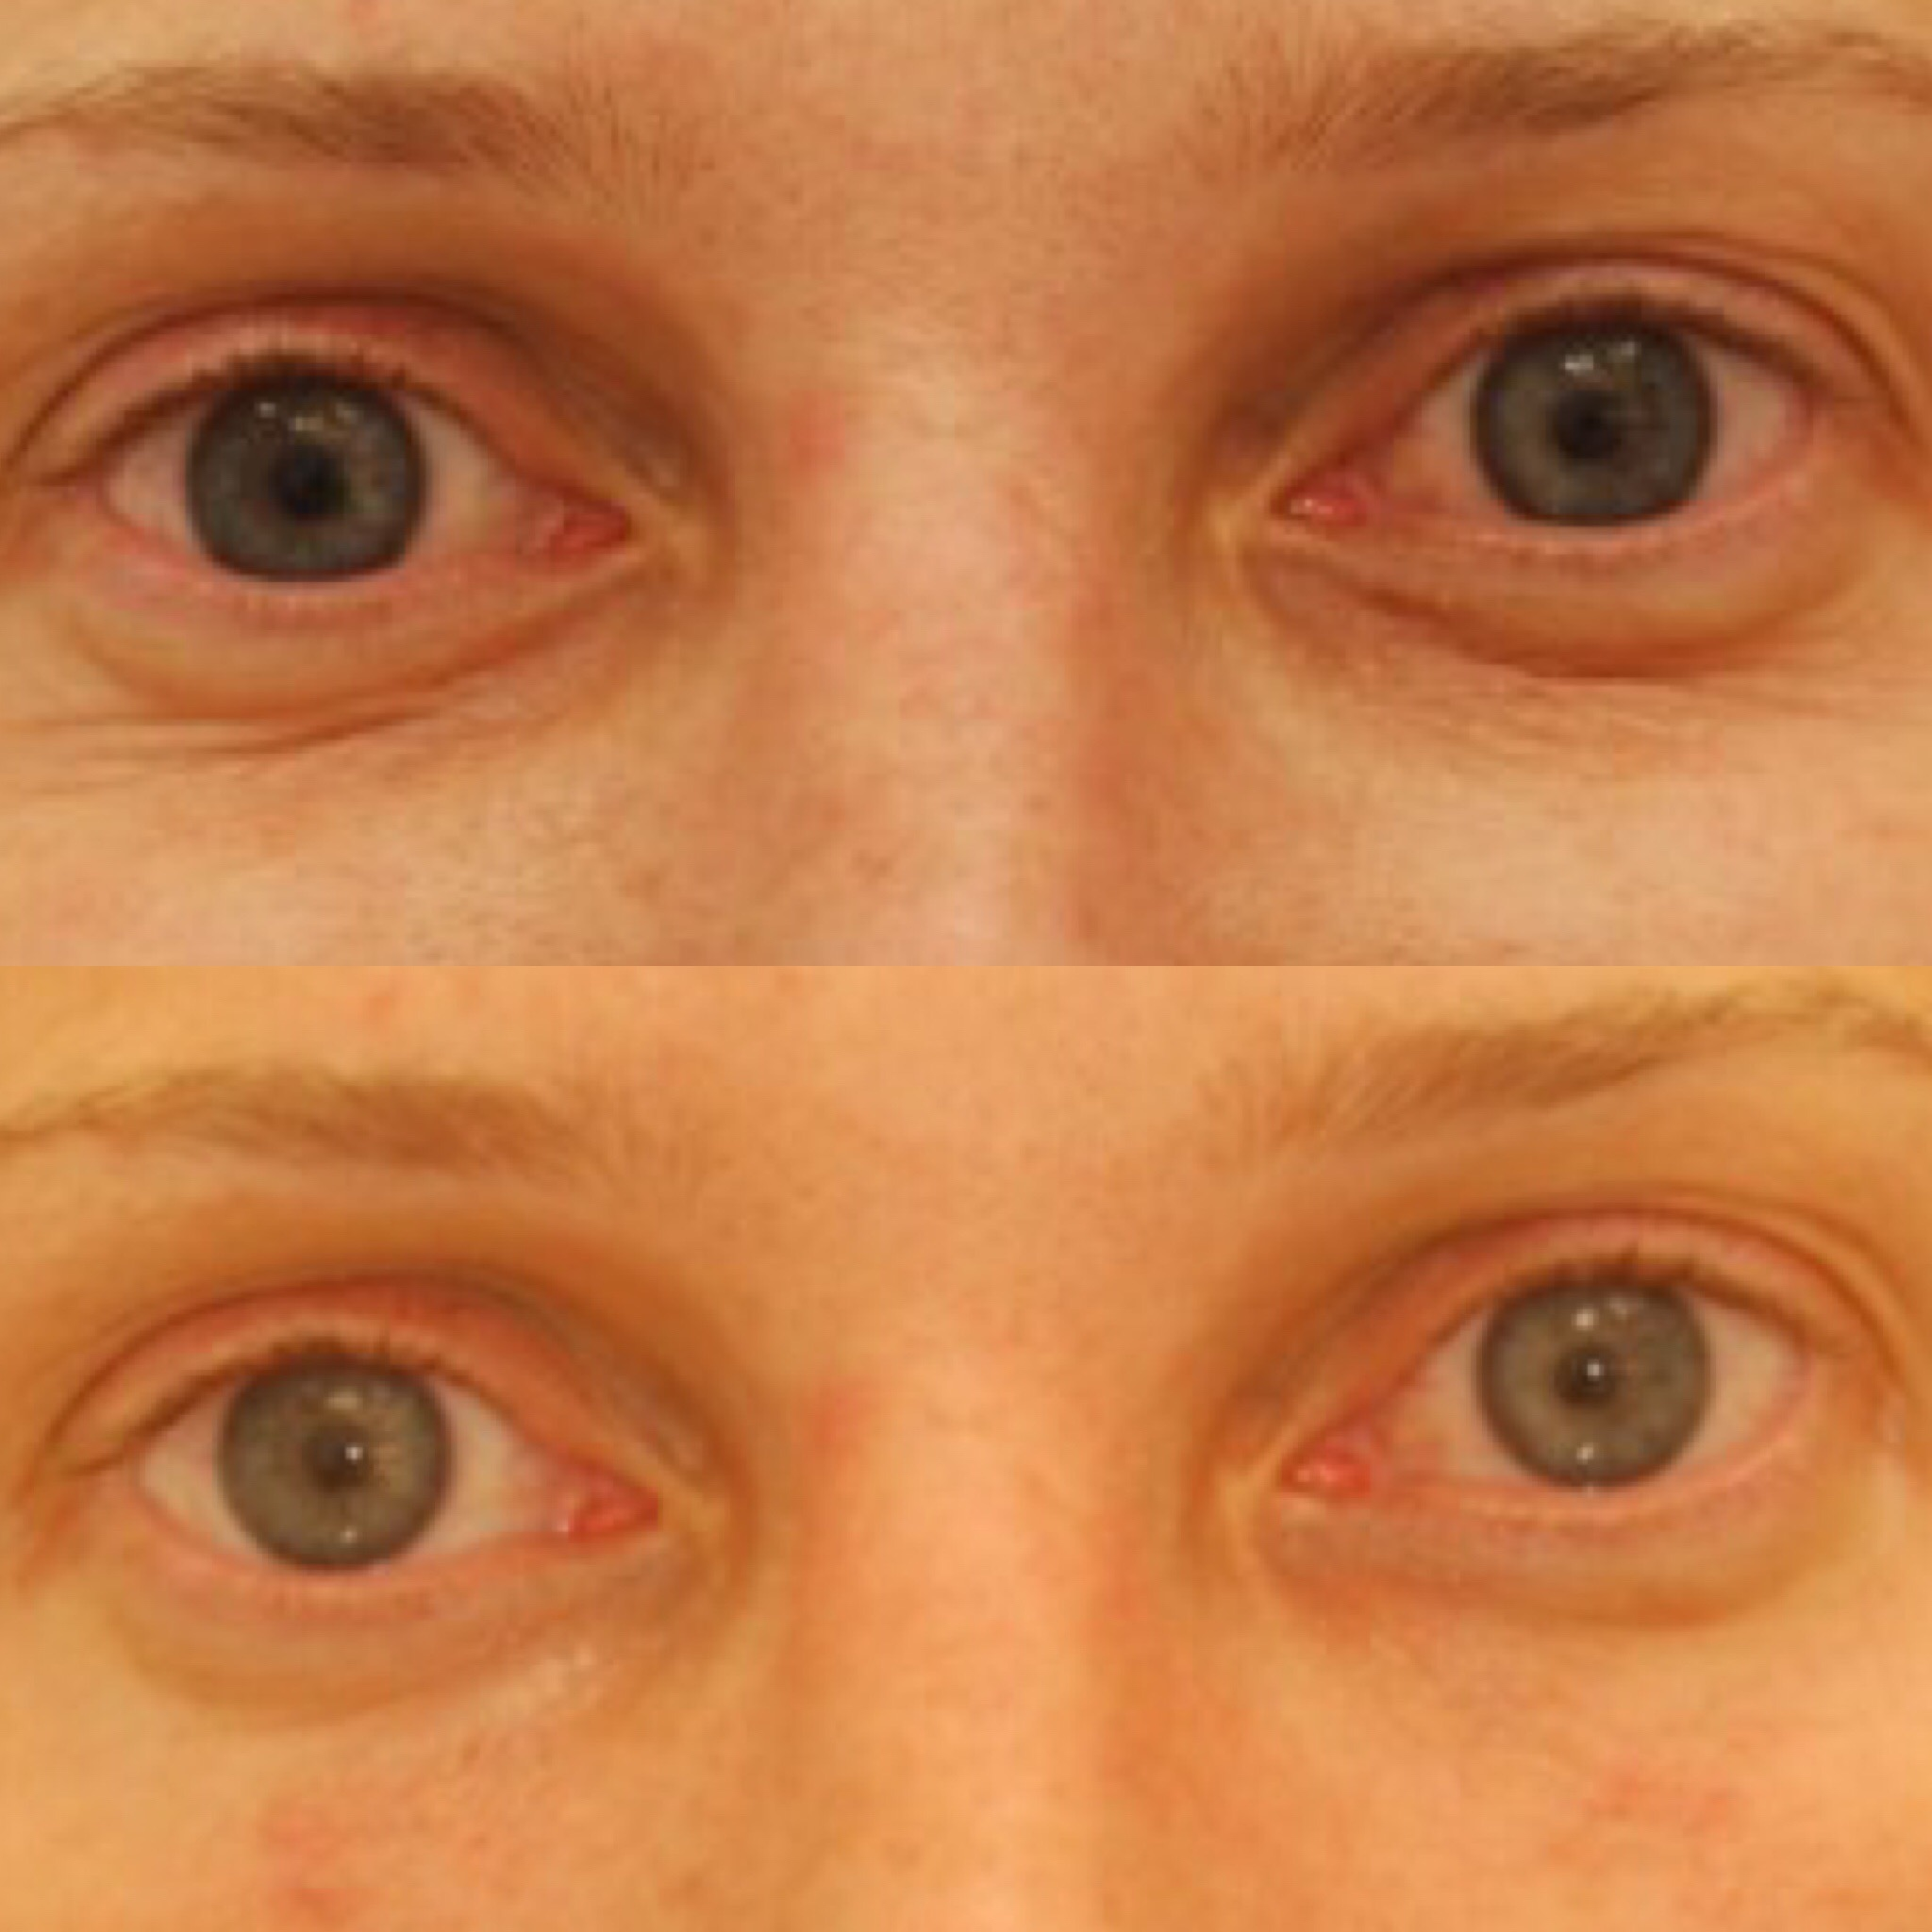 Actual patient of Dr. Devgan, before and immediately after tear trough filler